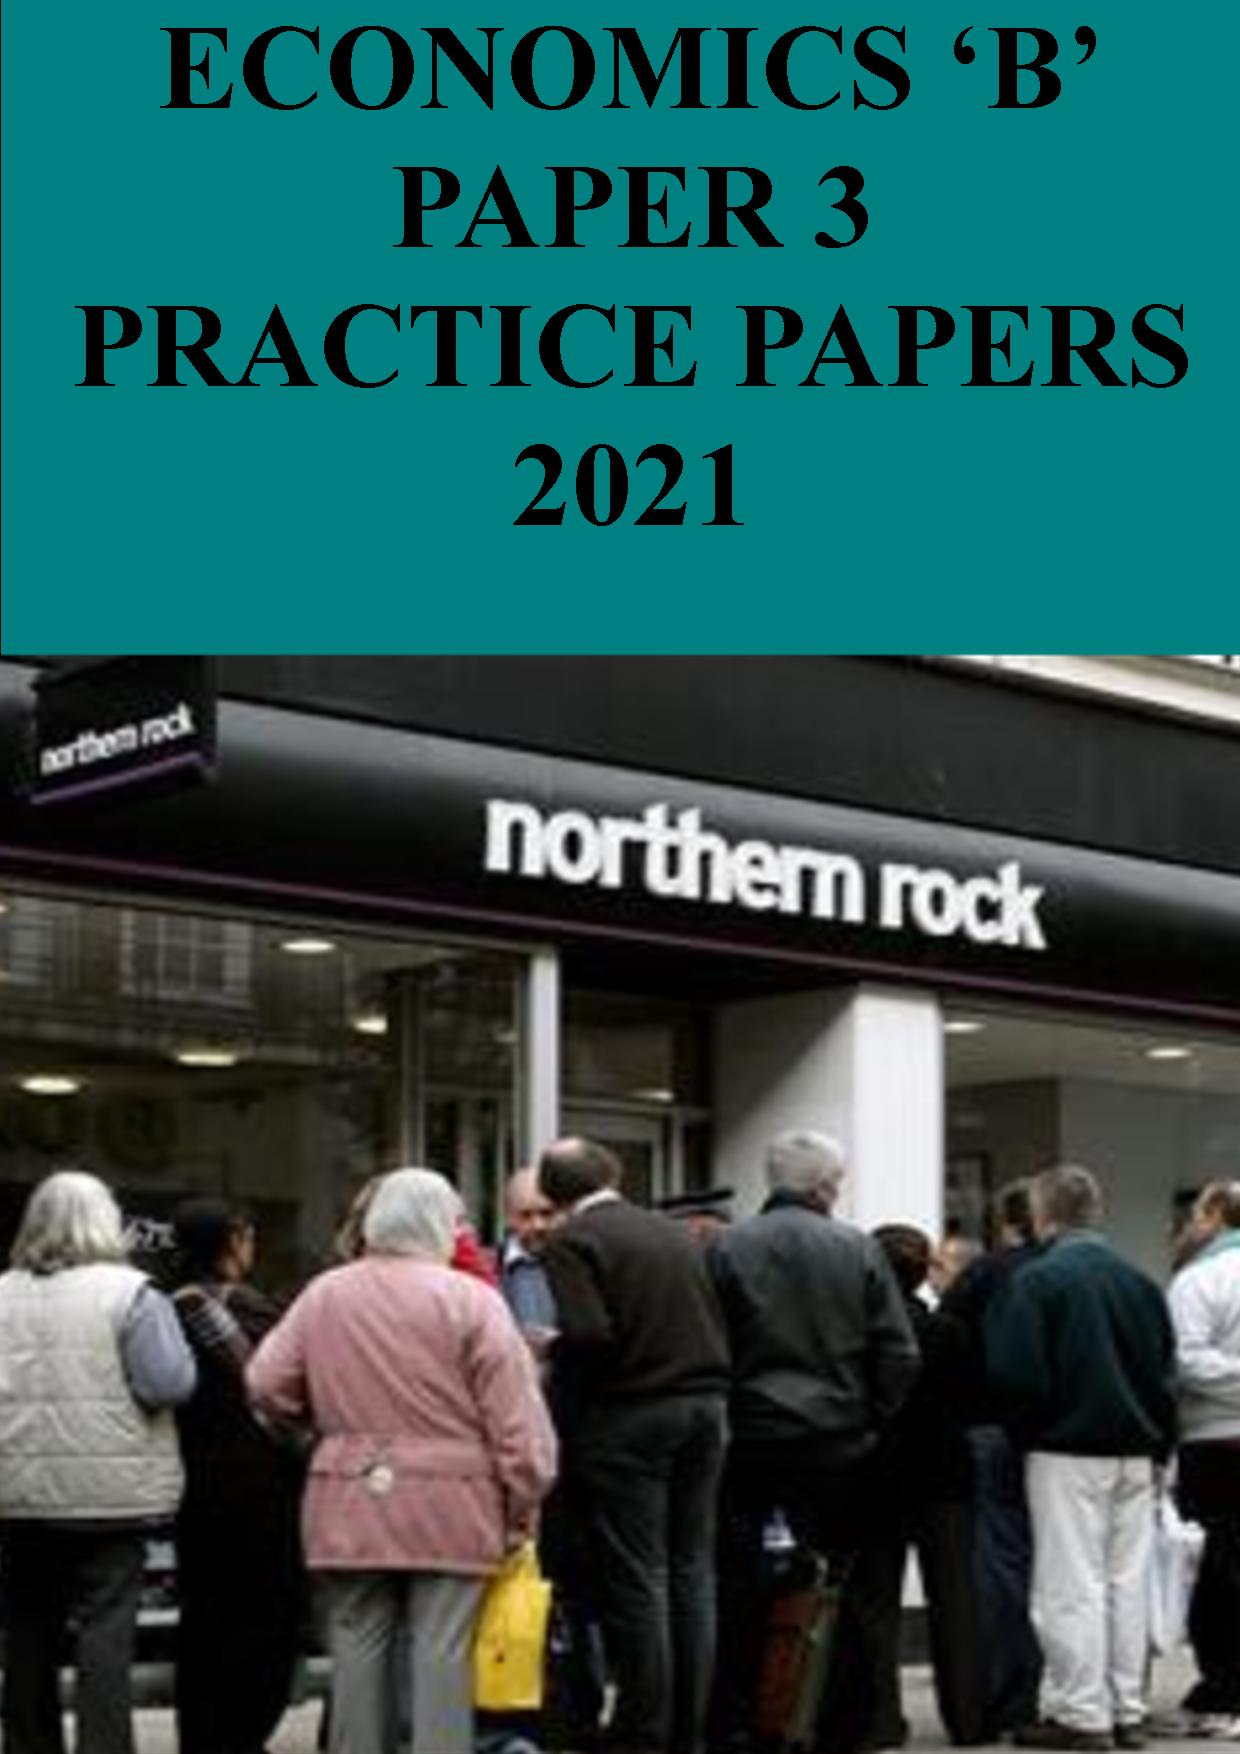 Paper 3 practice papers - 2021